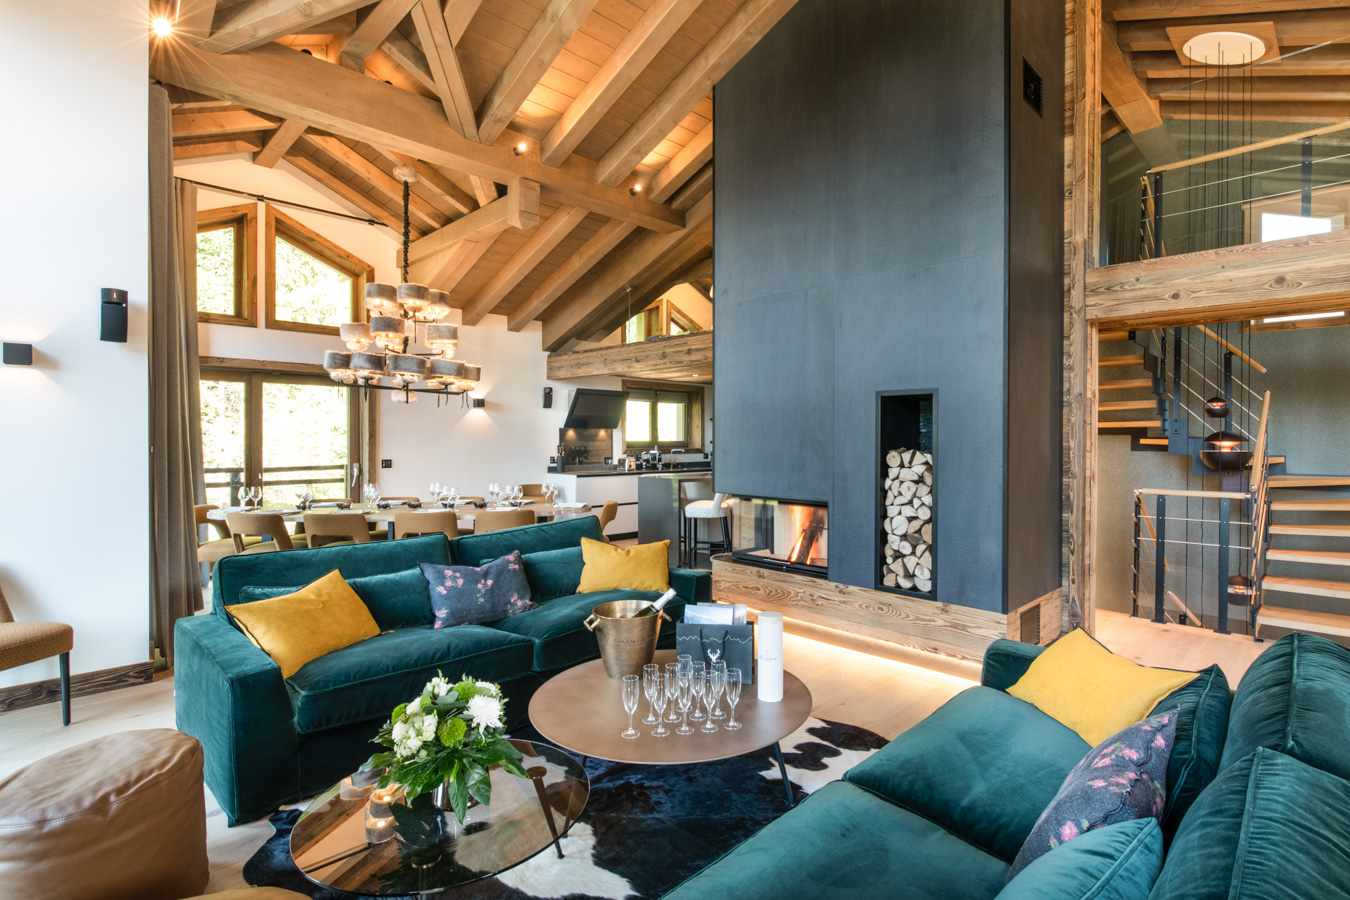 Canyon Lodge premium luxury chalet in Courchevel 3 Valleys